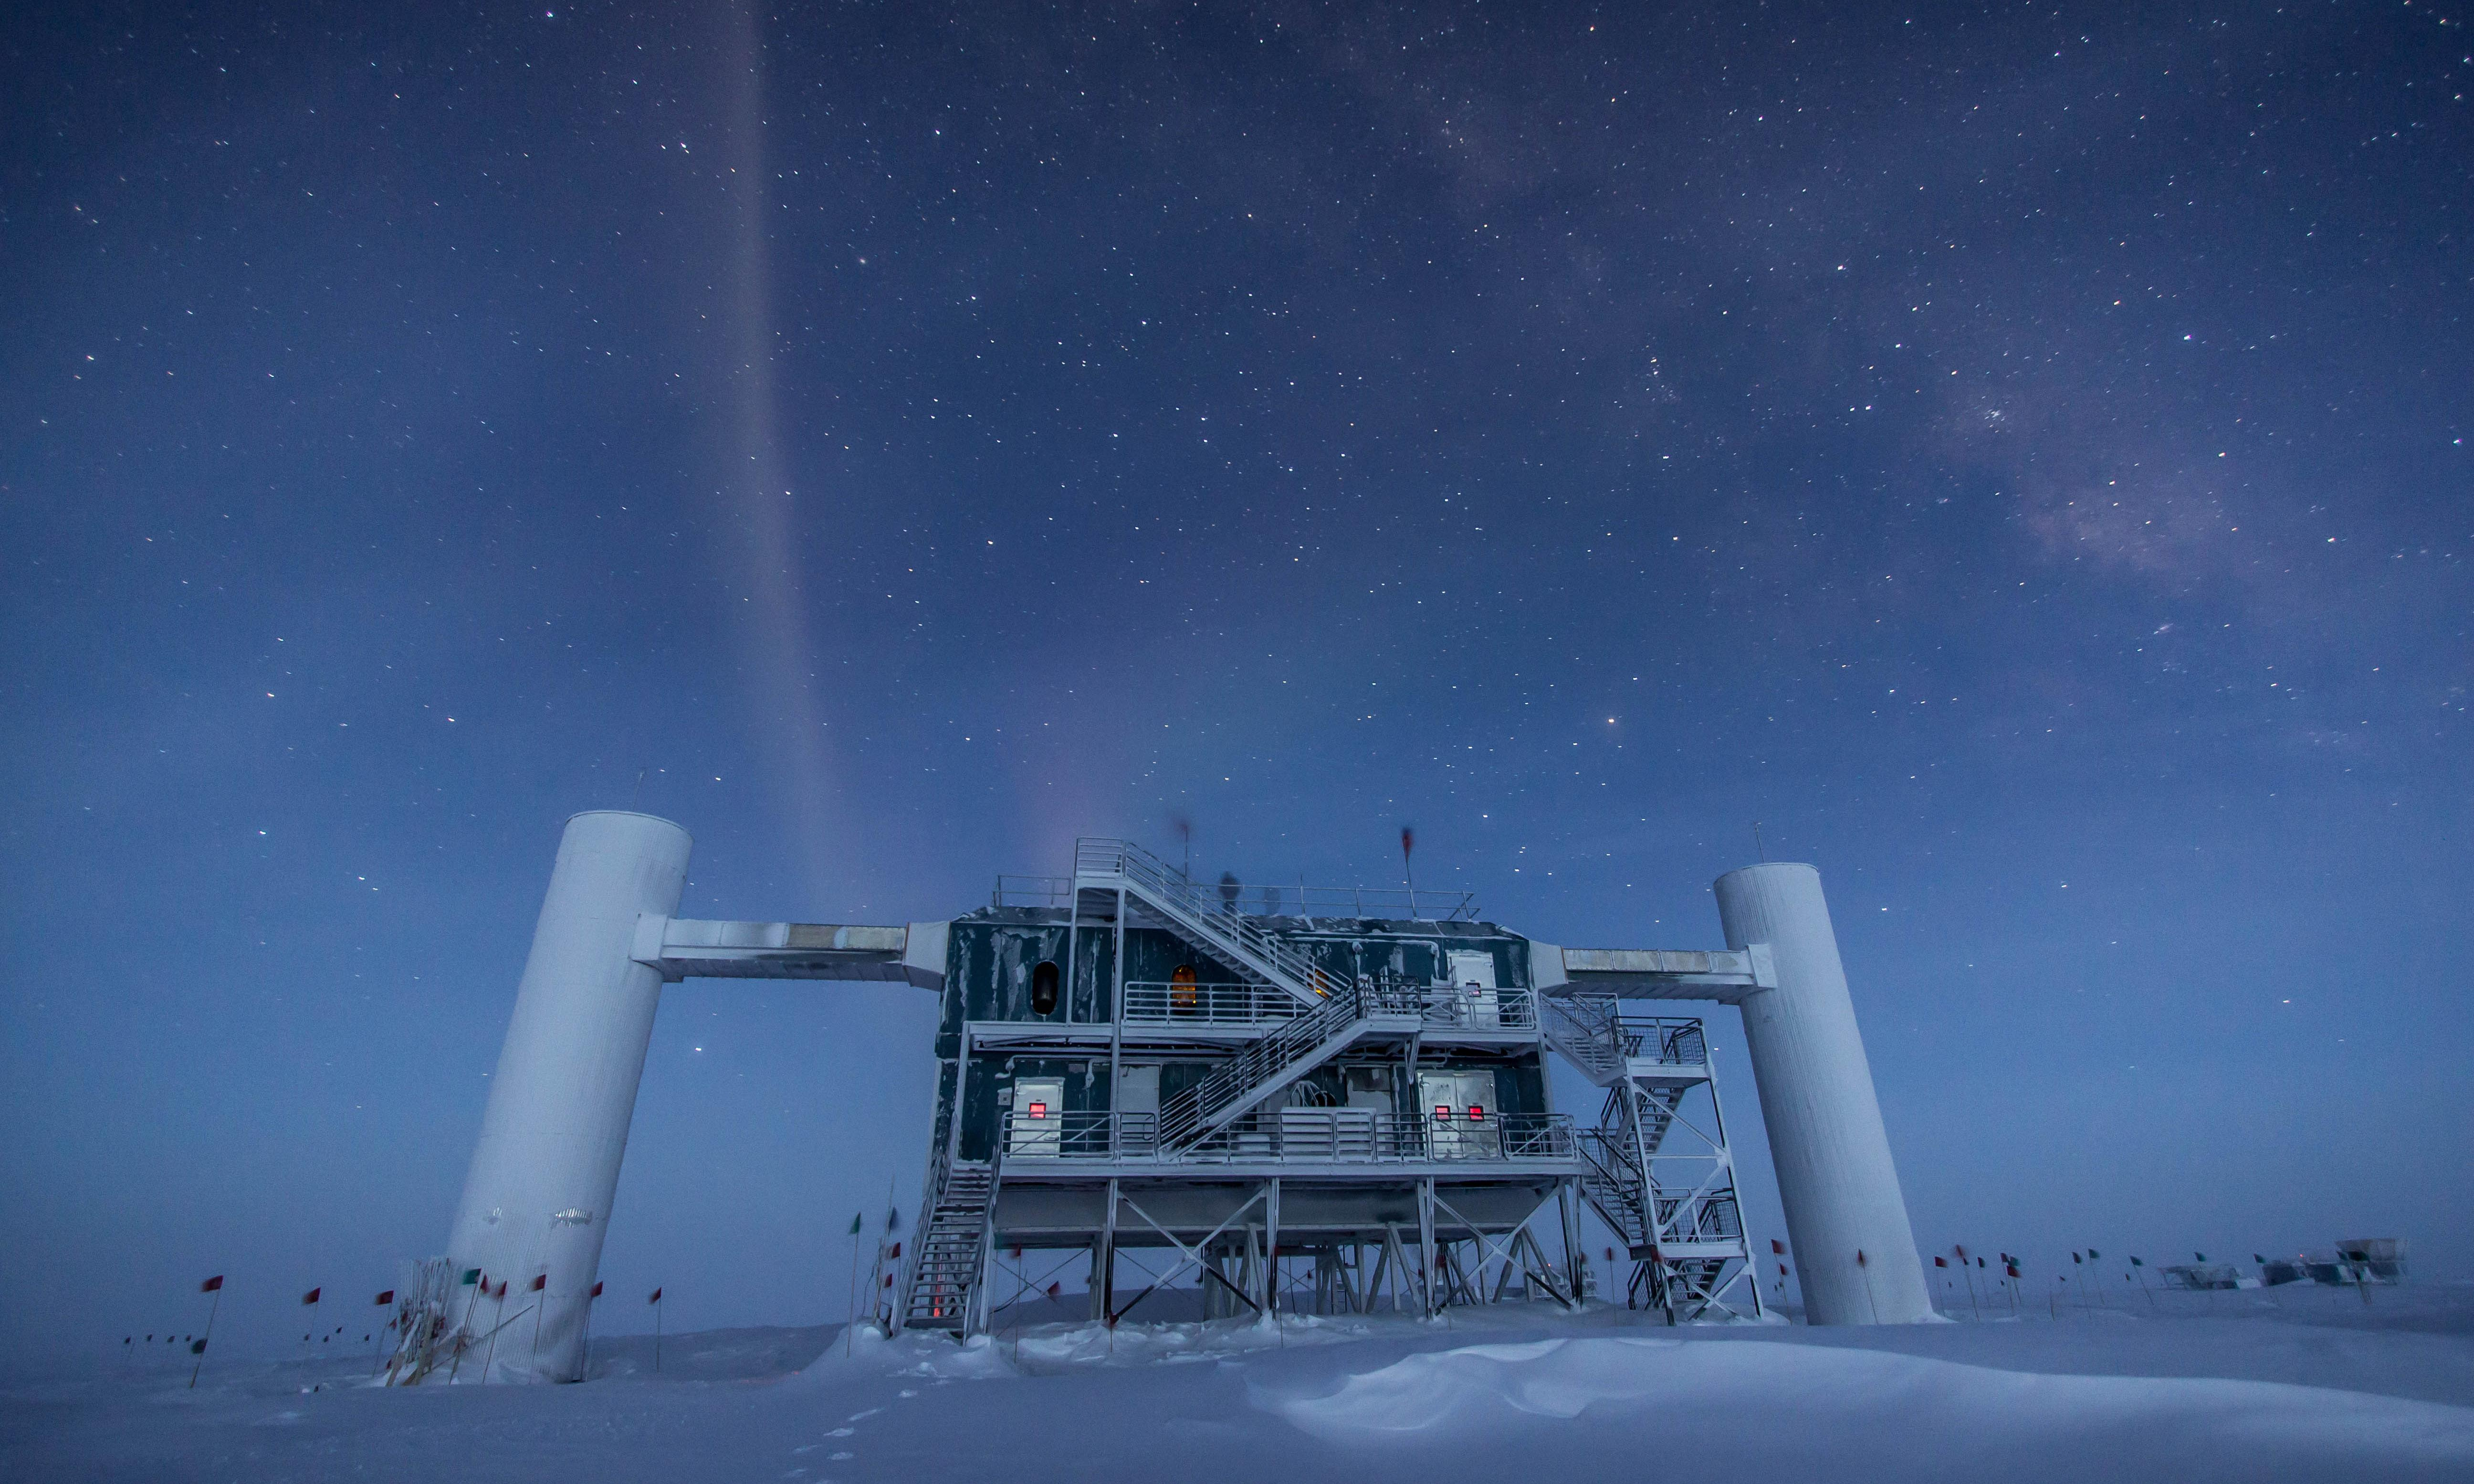 Neutrino that struck Antarctica traced to galaxy 3.7bn light years away